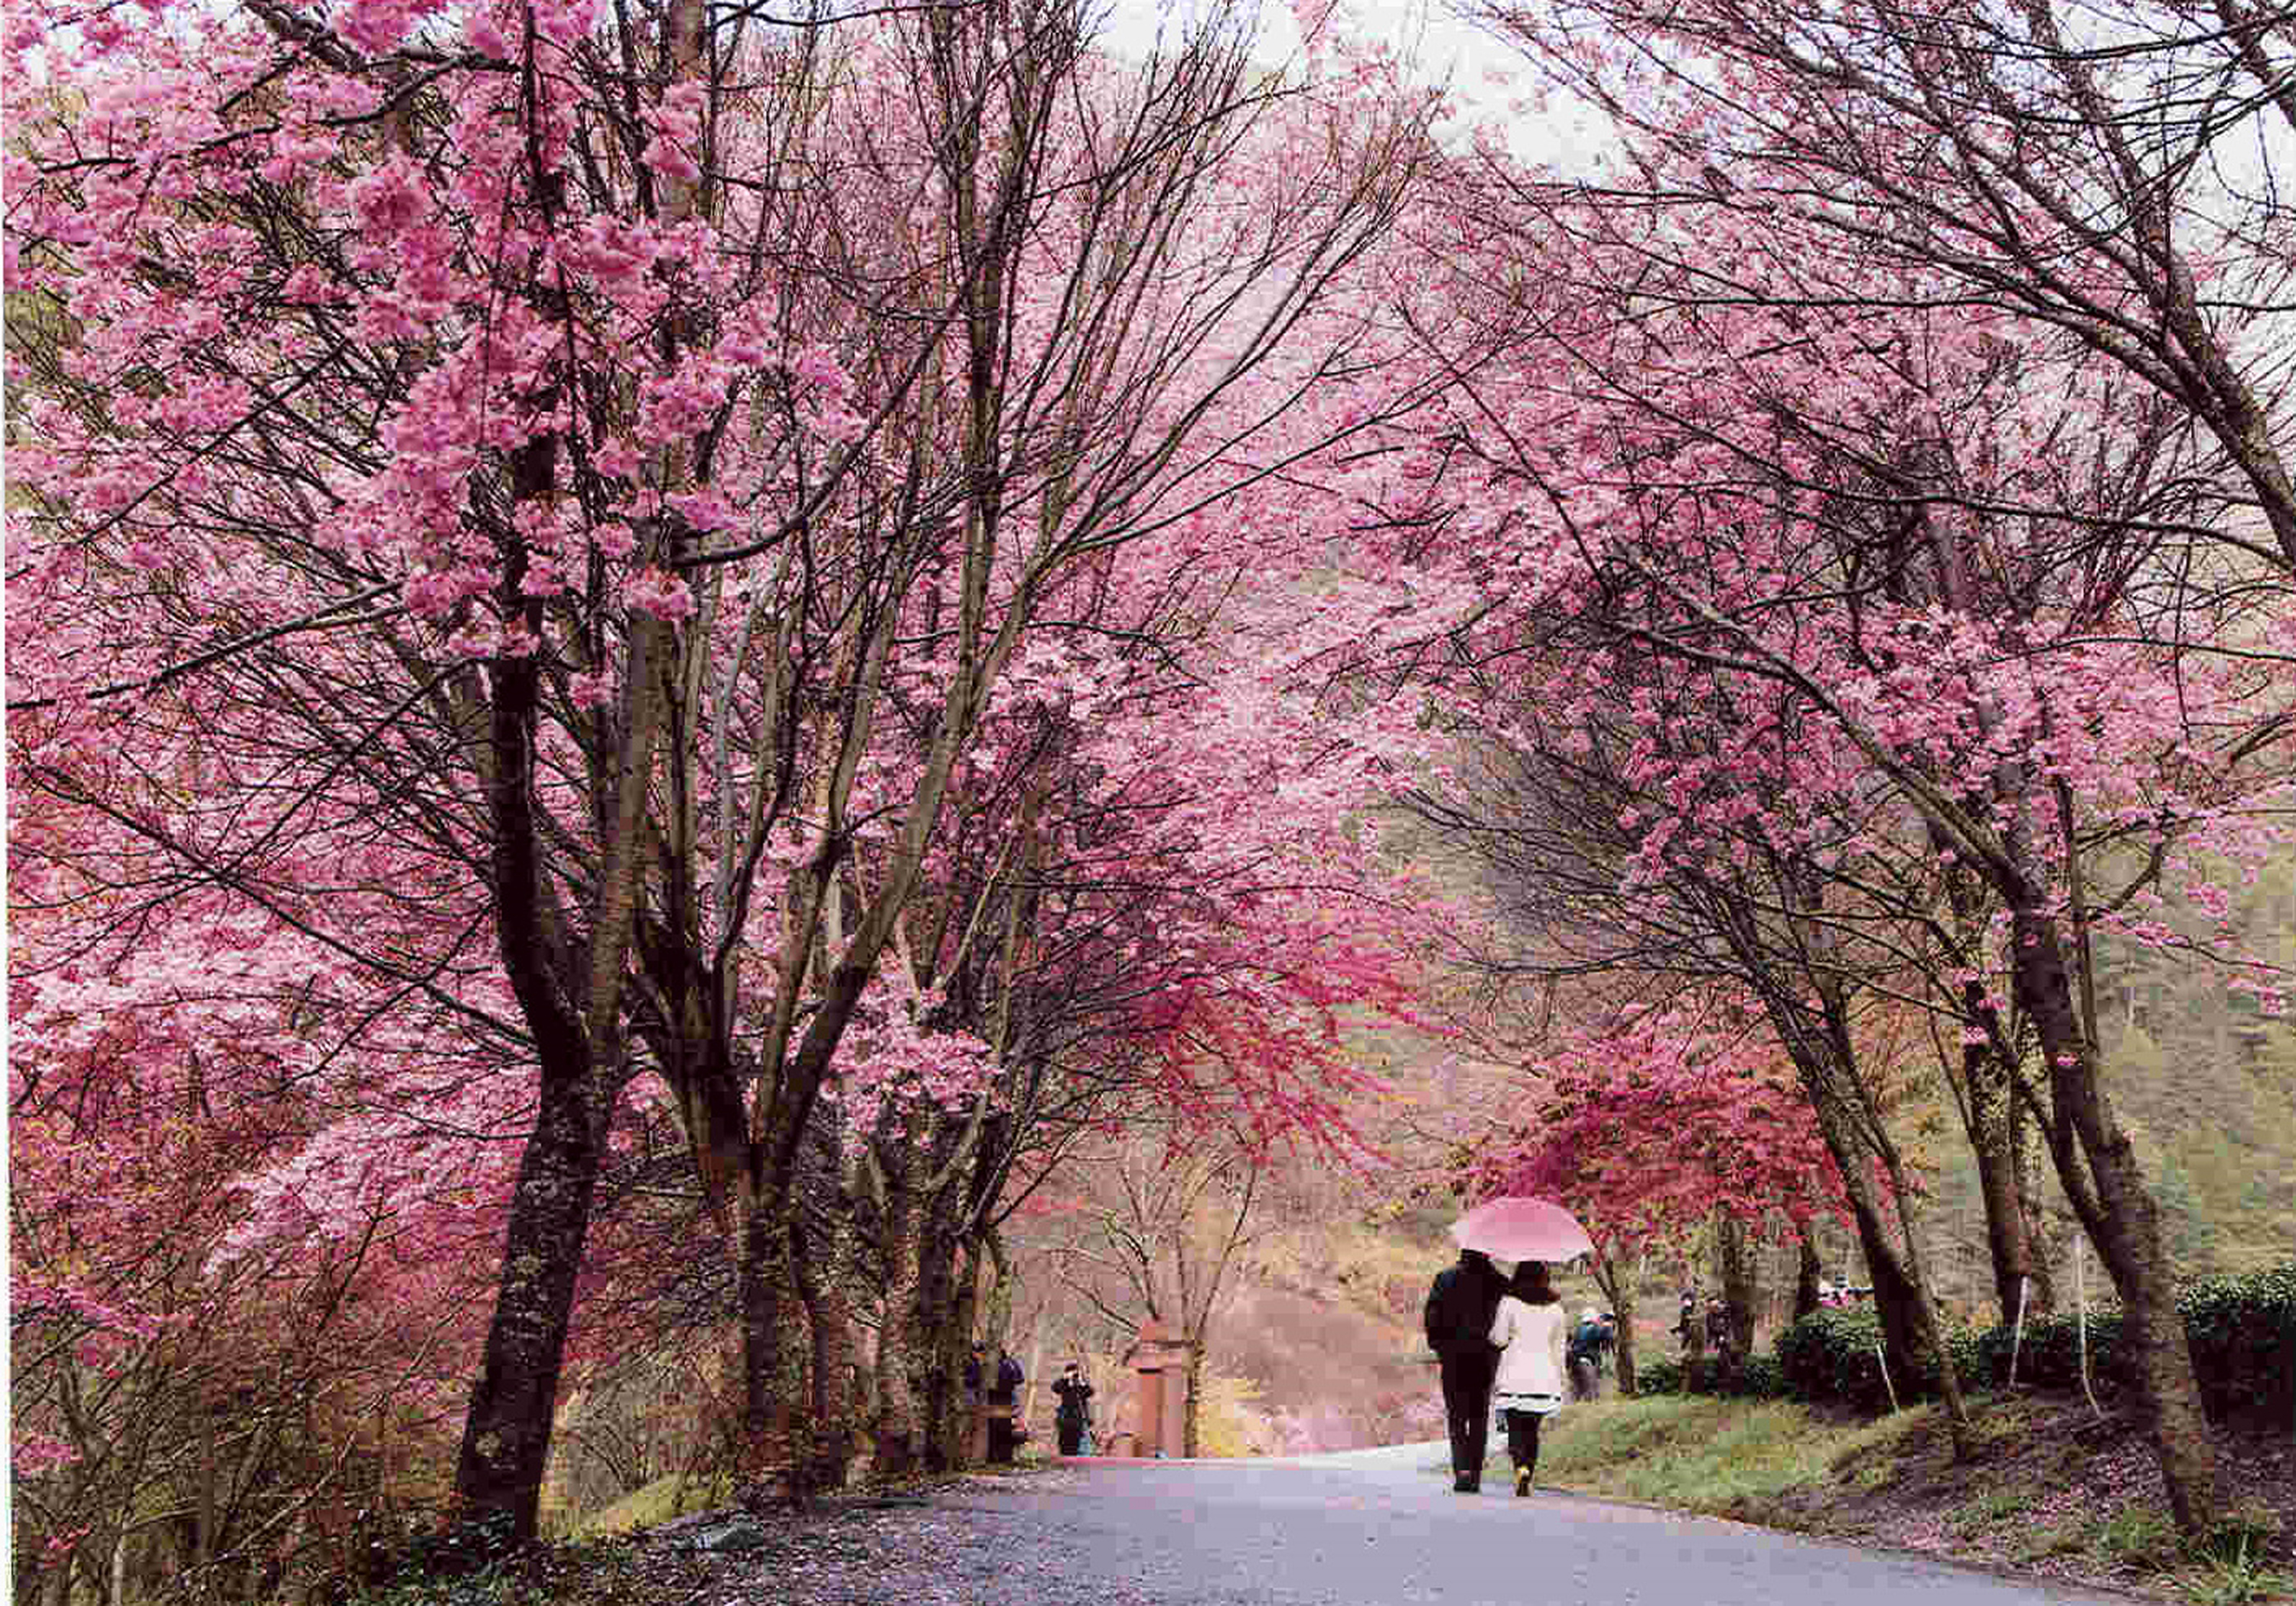 (Cherry blossoms on Wuling Farm; photo courtesy of the Directorate 